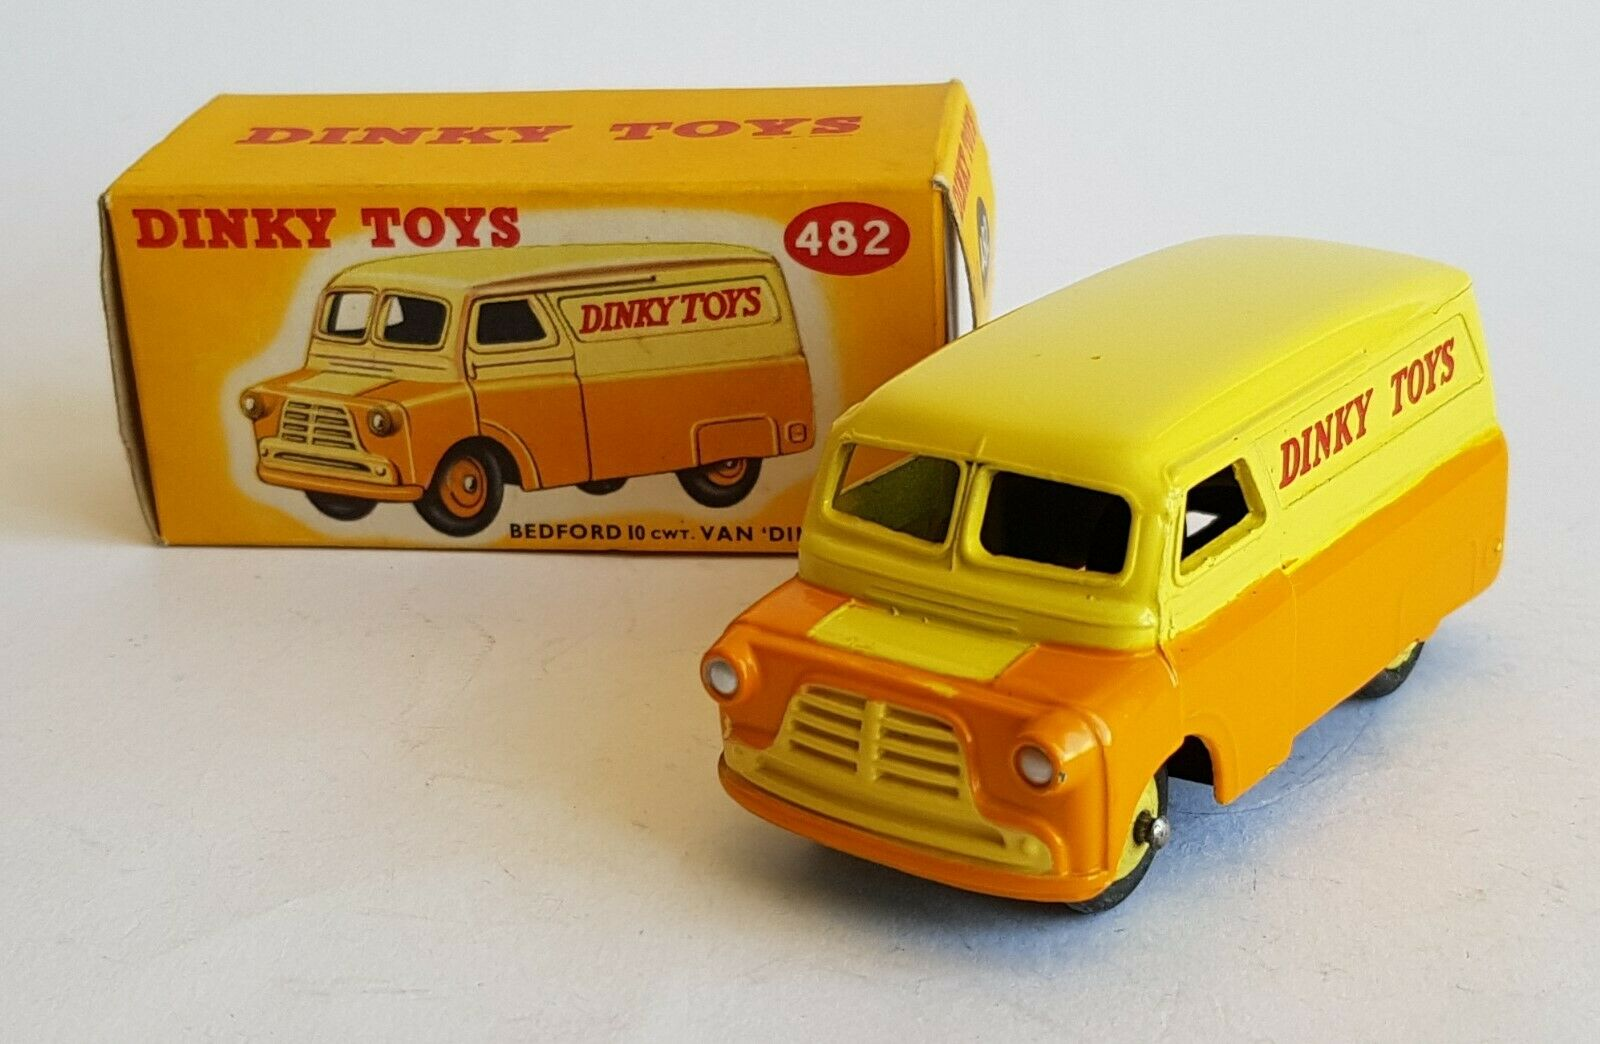 DINKY TOYS No 482, Bedford 10 CWT Van,  DINKY TOYS , très Near Comme neuf condition